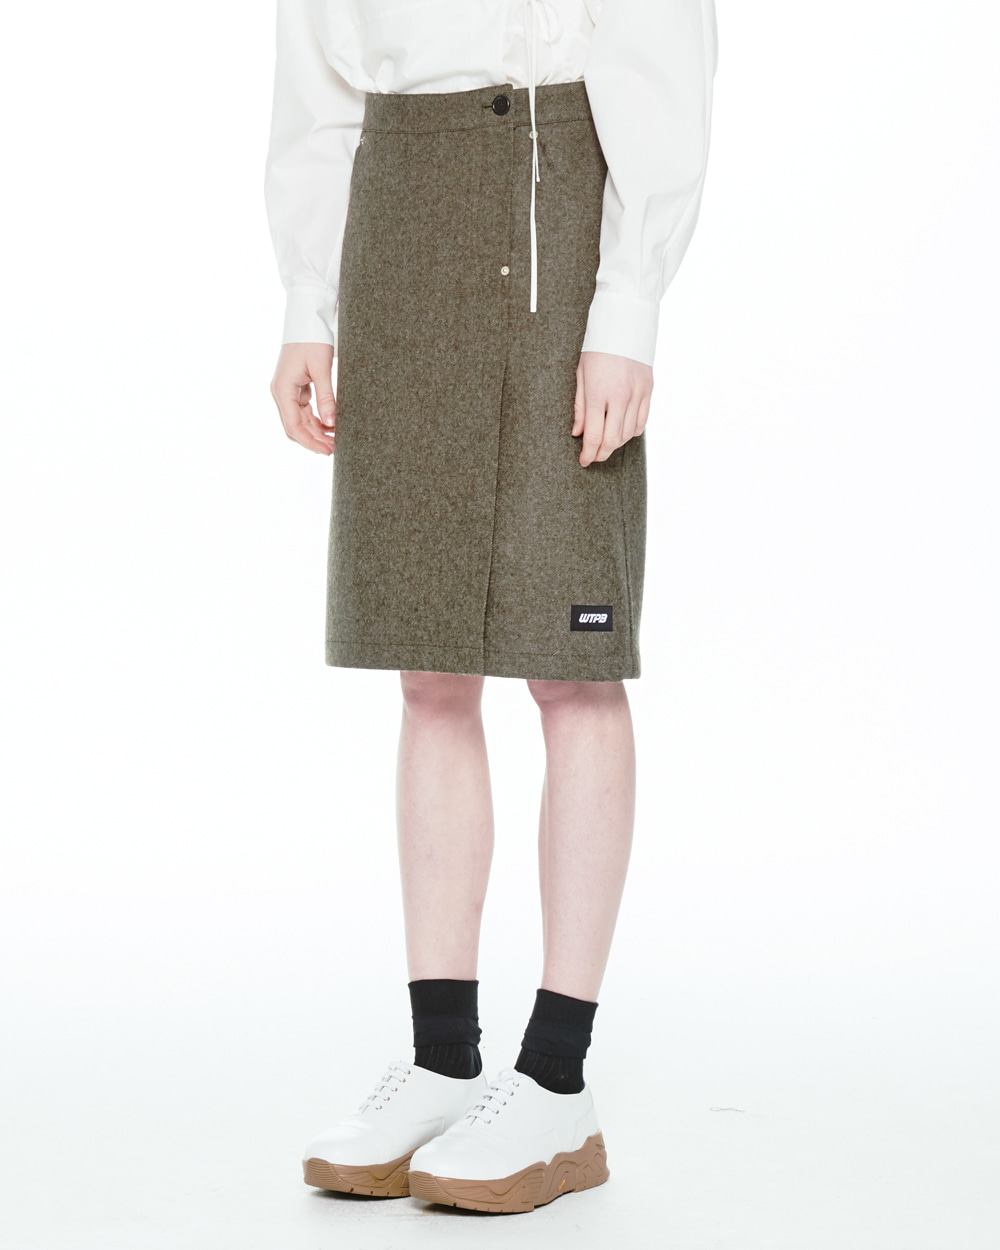 FW20 RIVET DETAIL WOOL SKIRT